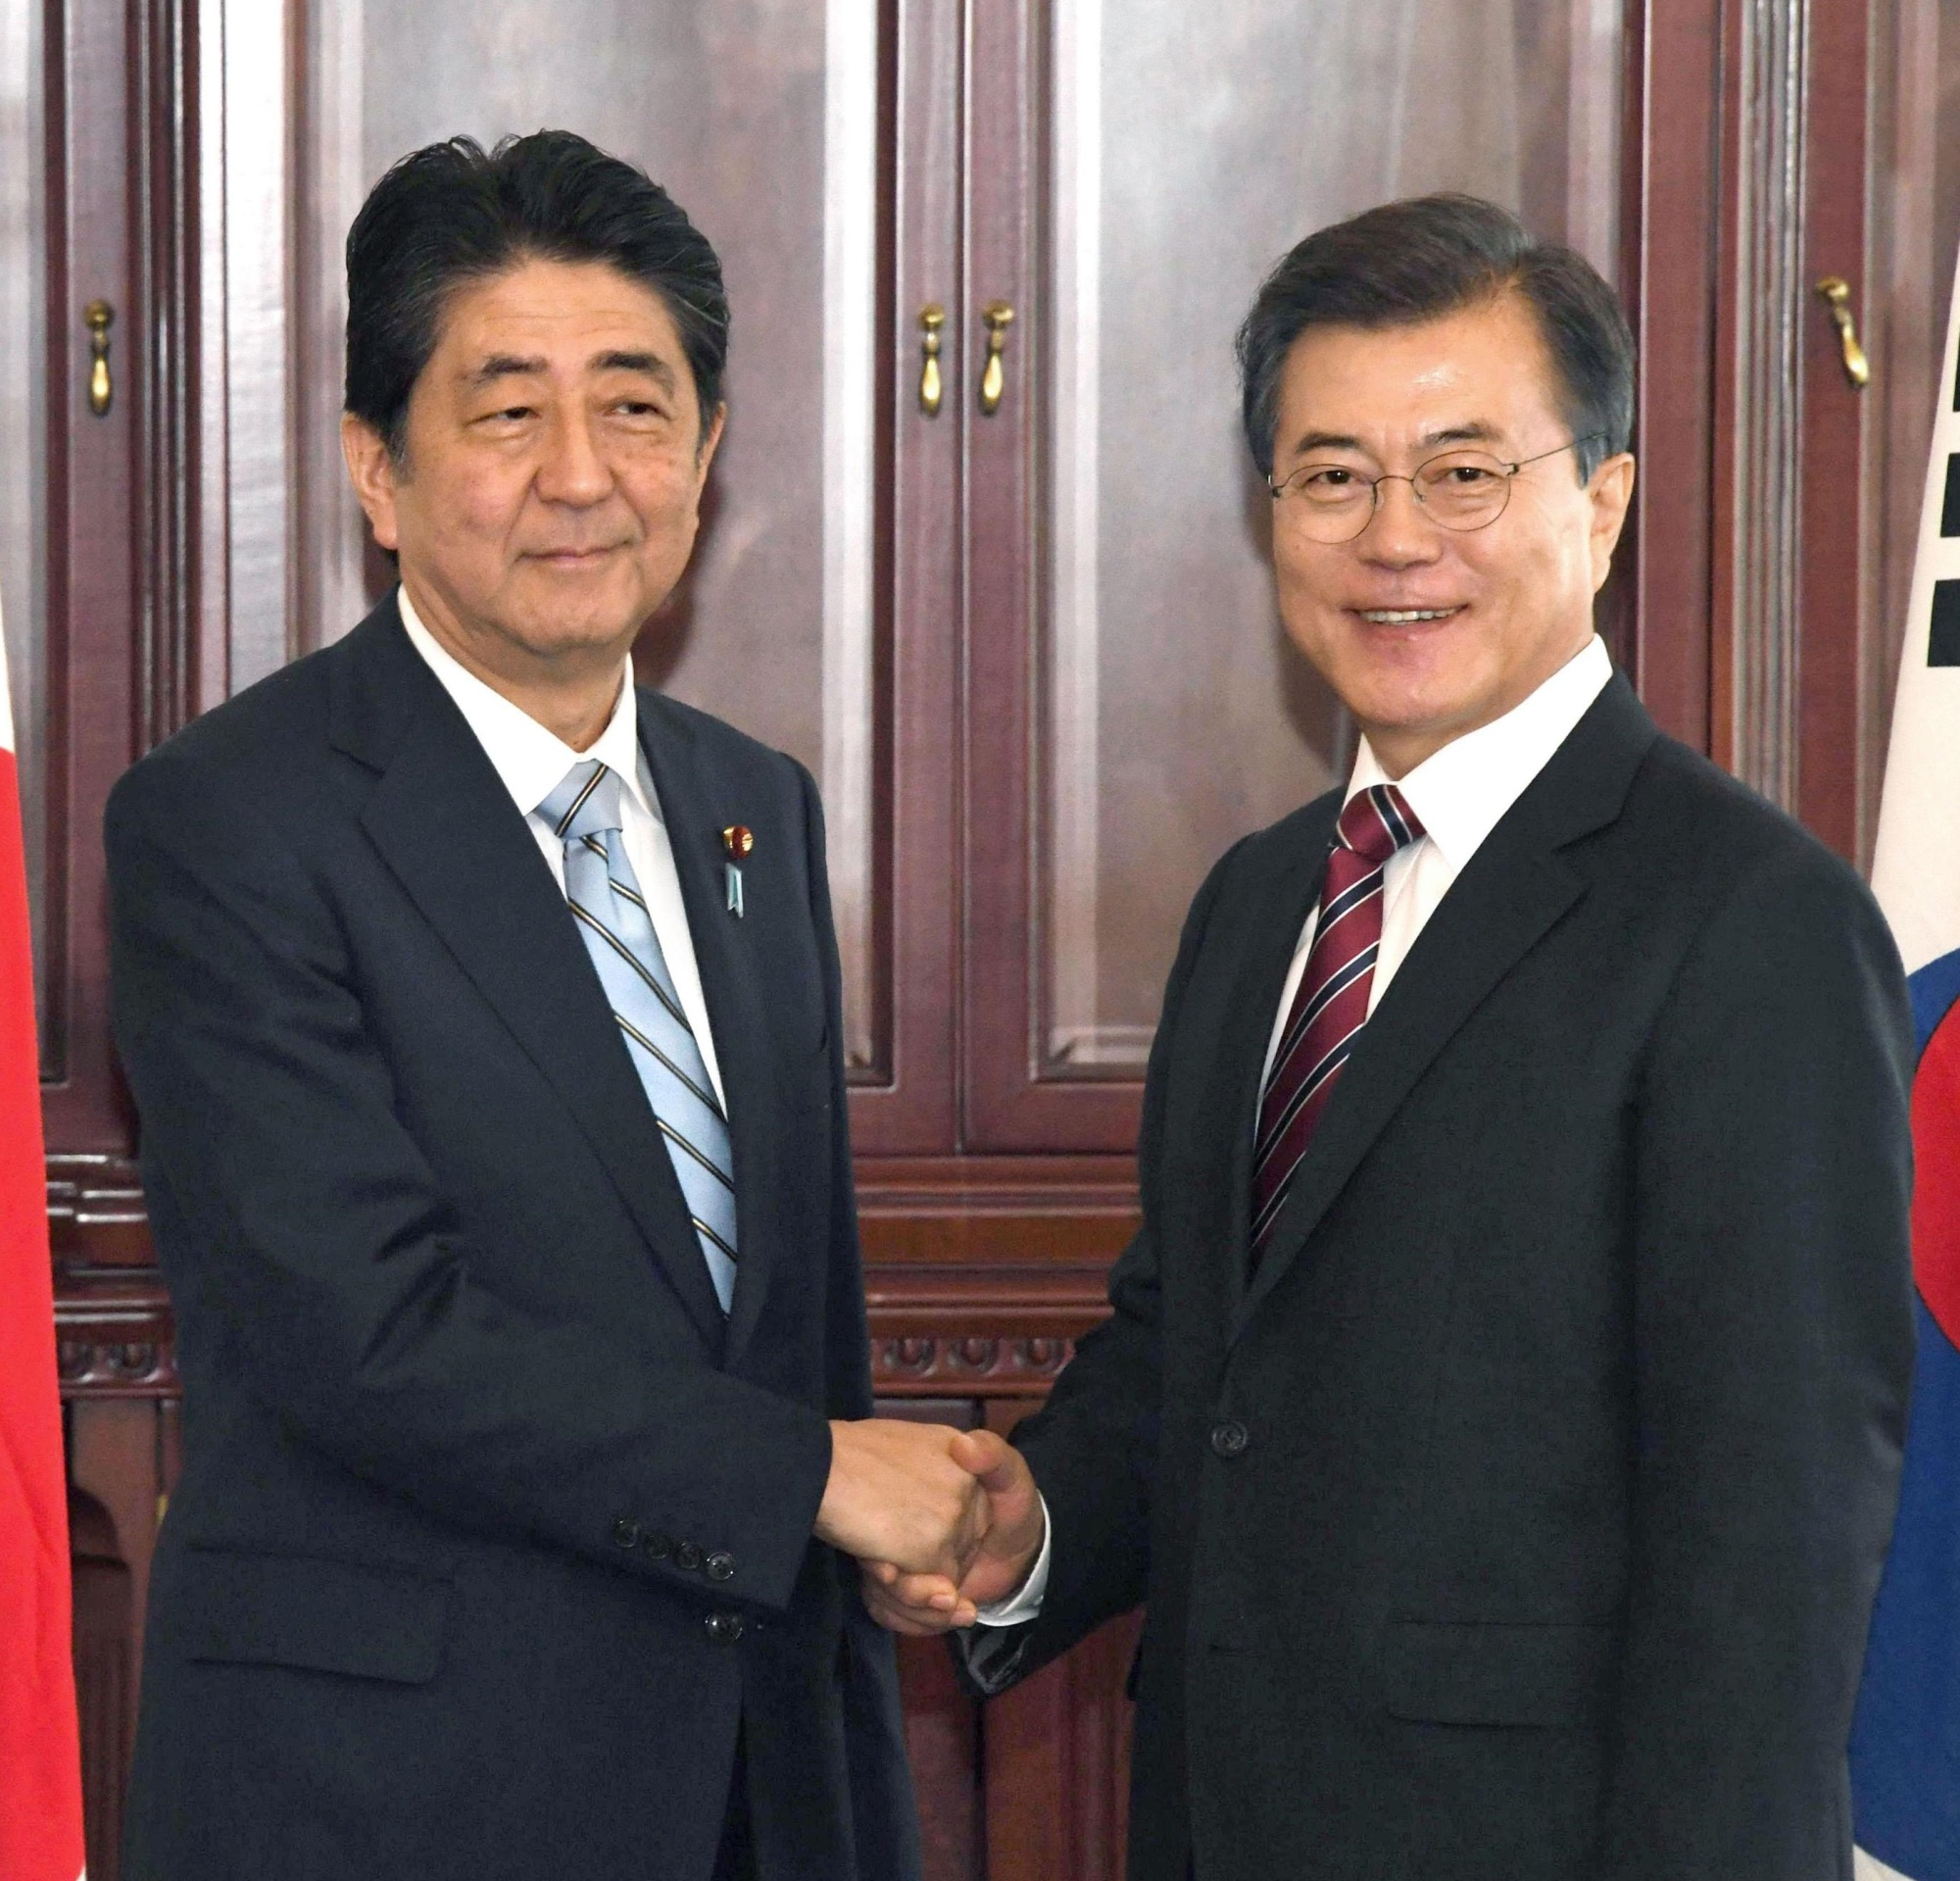 Prime Minister Shinzo Abe and South Korean President Moon Jae-in pose for the media ahead of their talks in Vladivostok, Russia, on Thursday. | KYODO